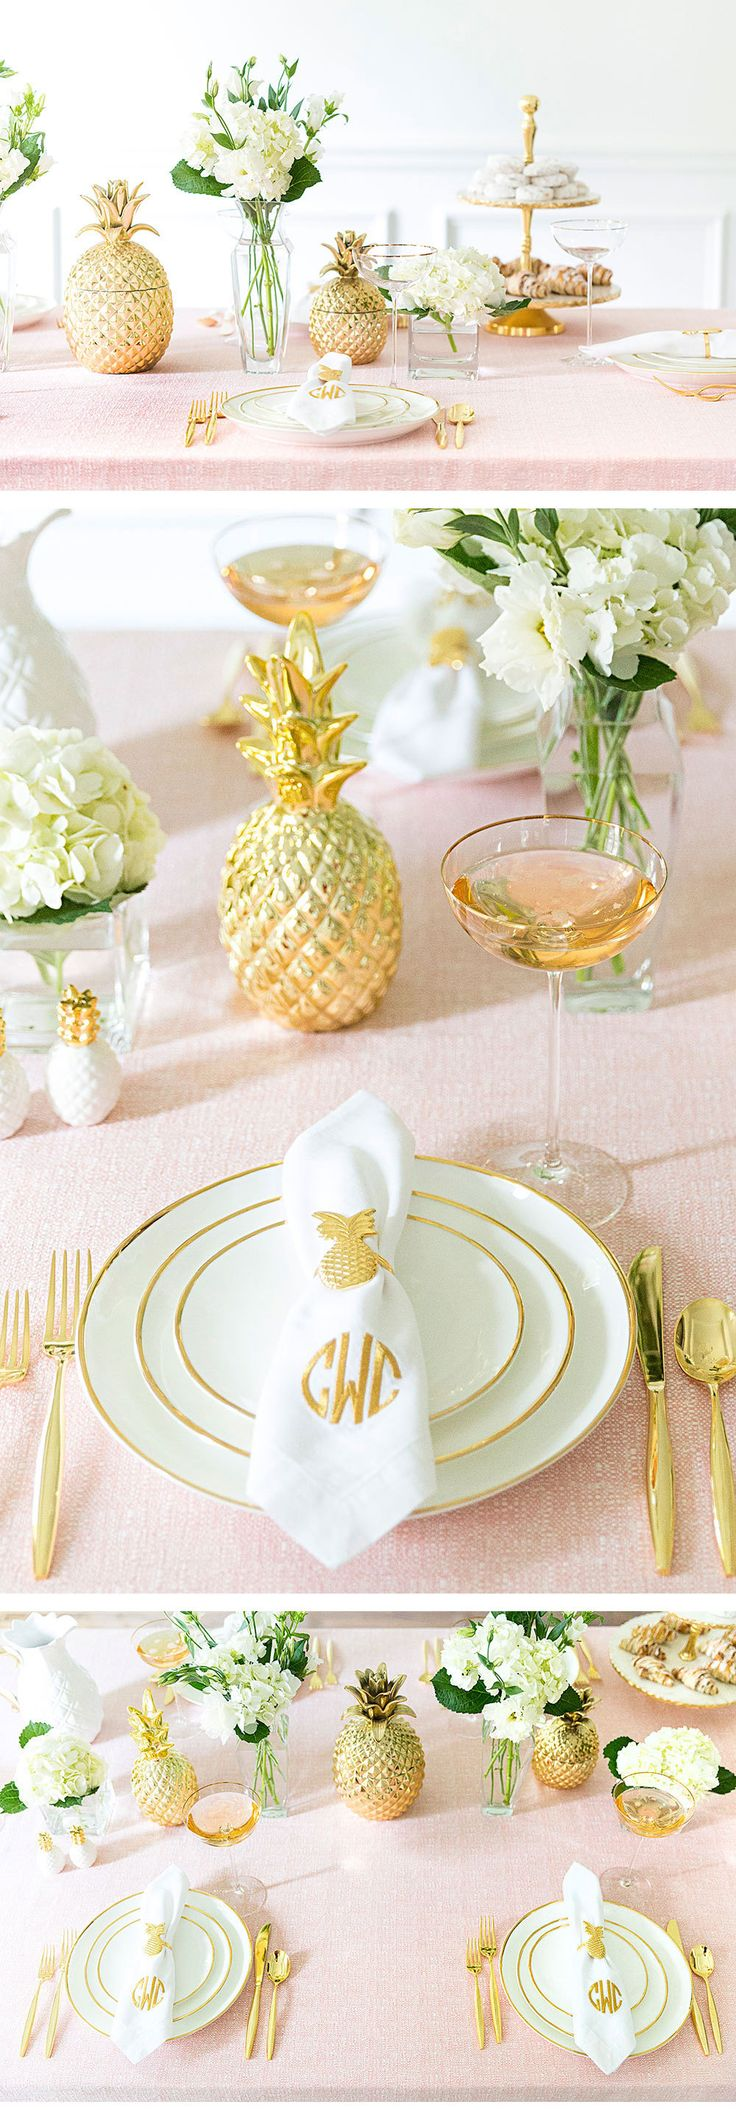 190 best Shower/Party Things images on Pinterest | Tropical party ...